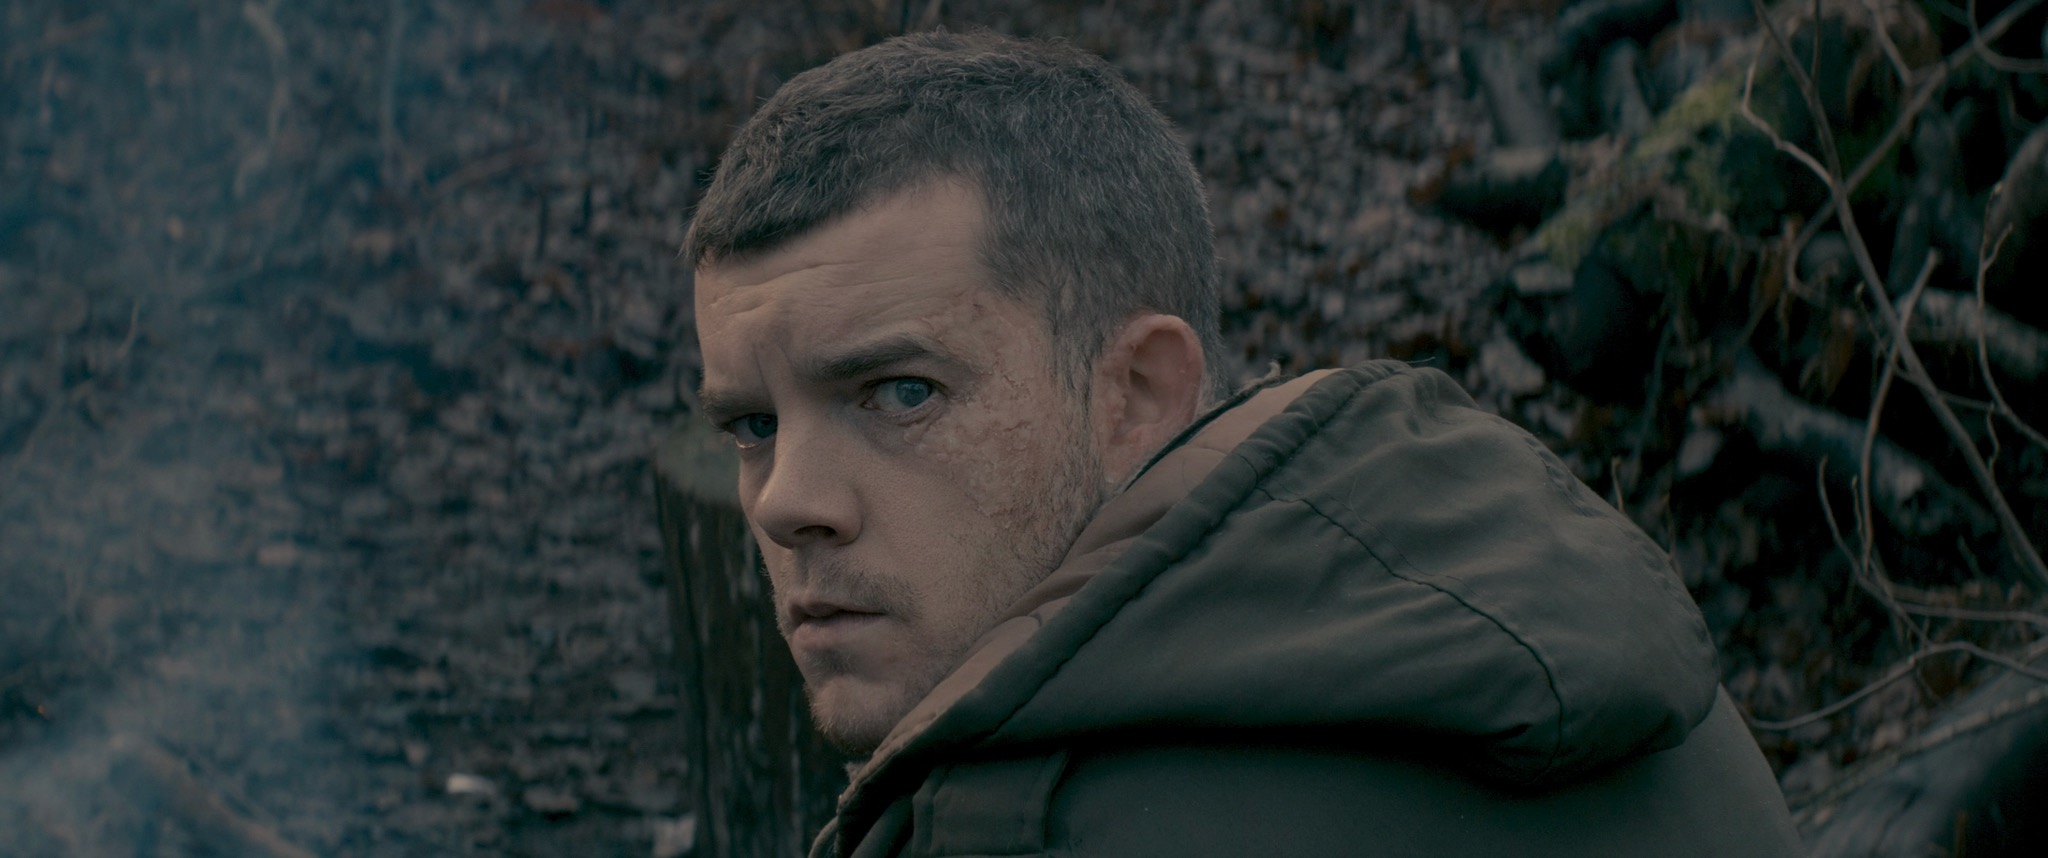 BW 1 high res still 5 RUSSELL TOVEY